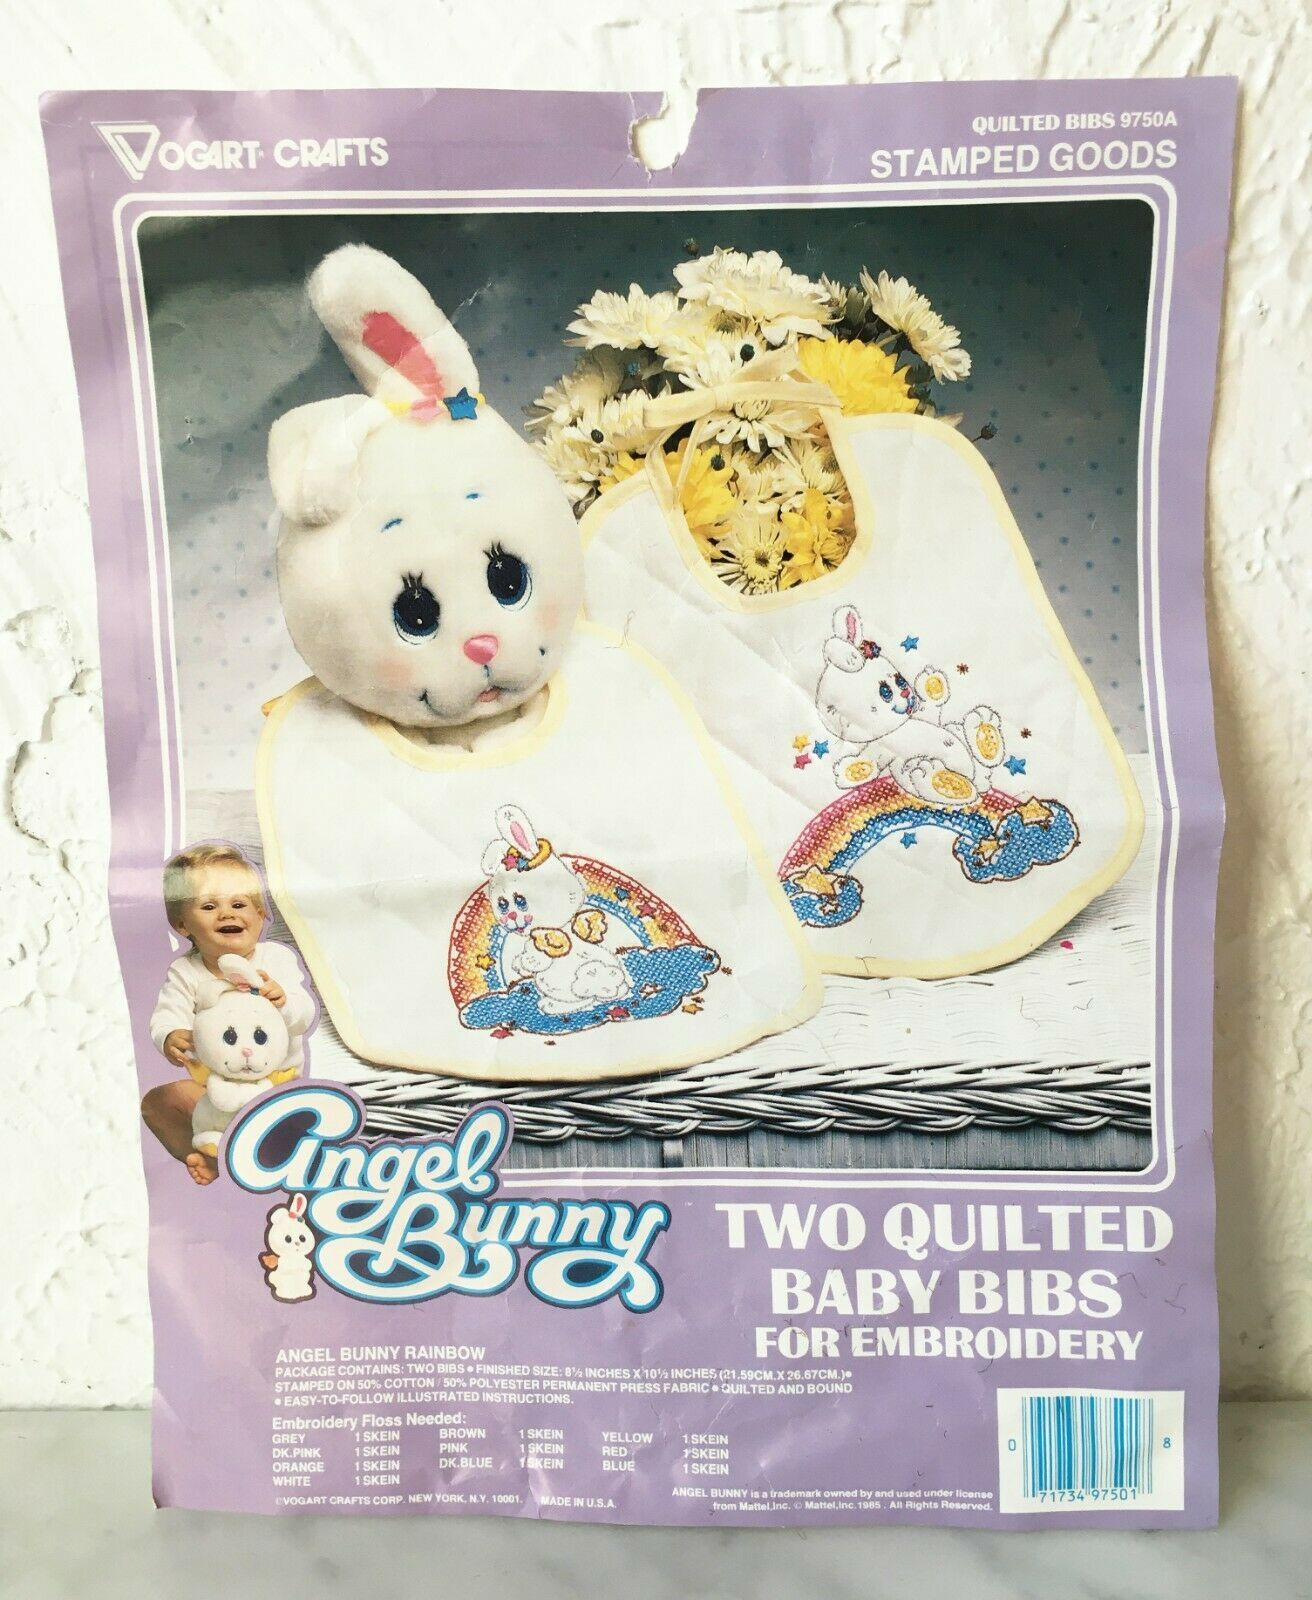 Primary image for Vogart Crafts Quilted Baby Bib Bunny Rainbow Embroidery Kit - Started